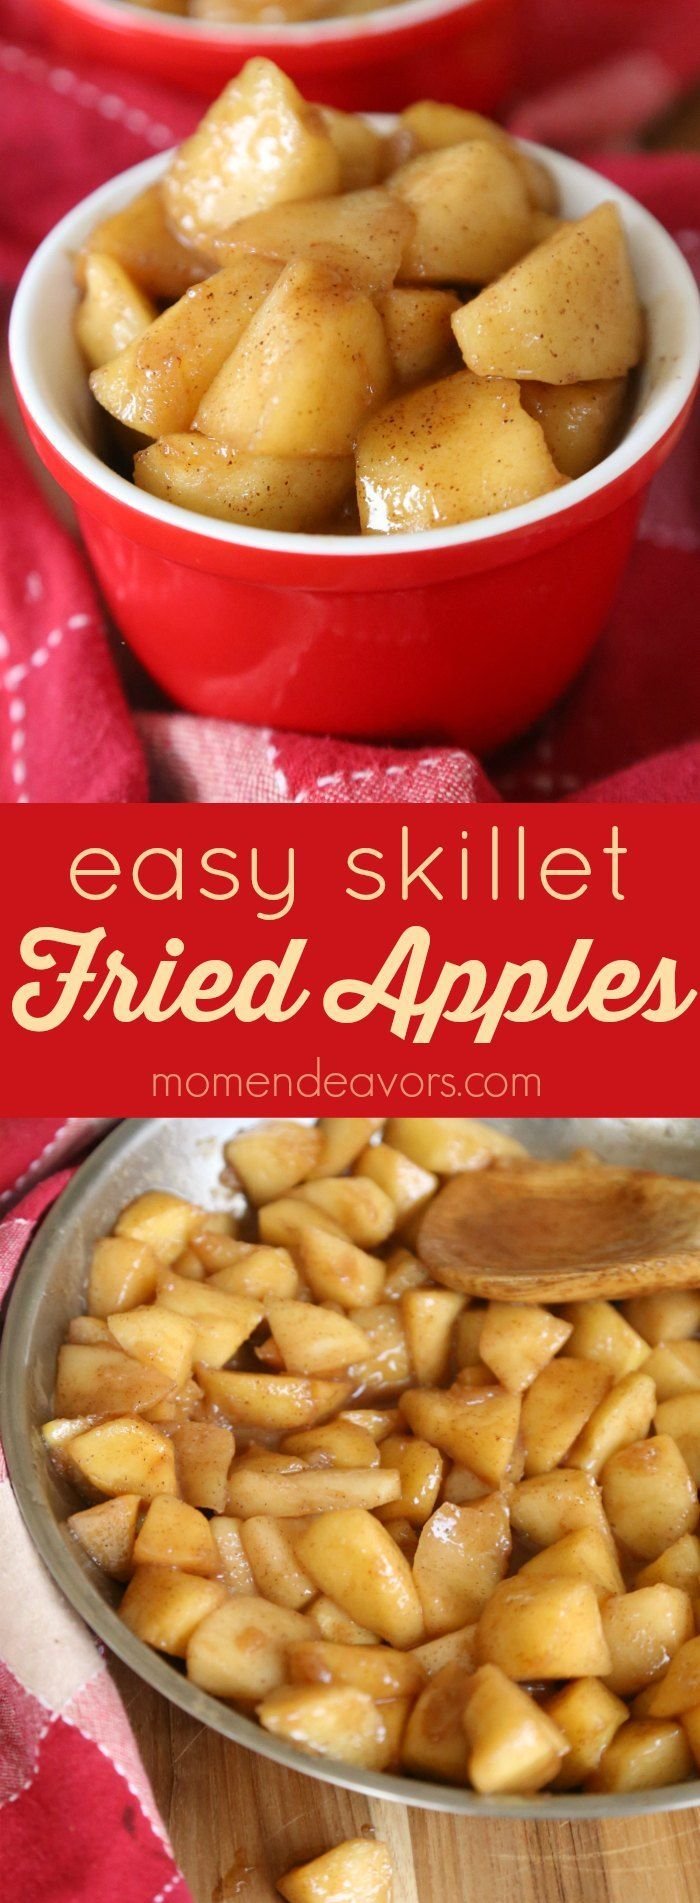 Easy Skillet Fried Apples -fried apples make for a tasty dessert or sweet side dish that the whole family will love.